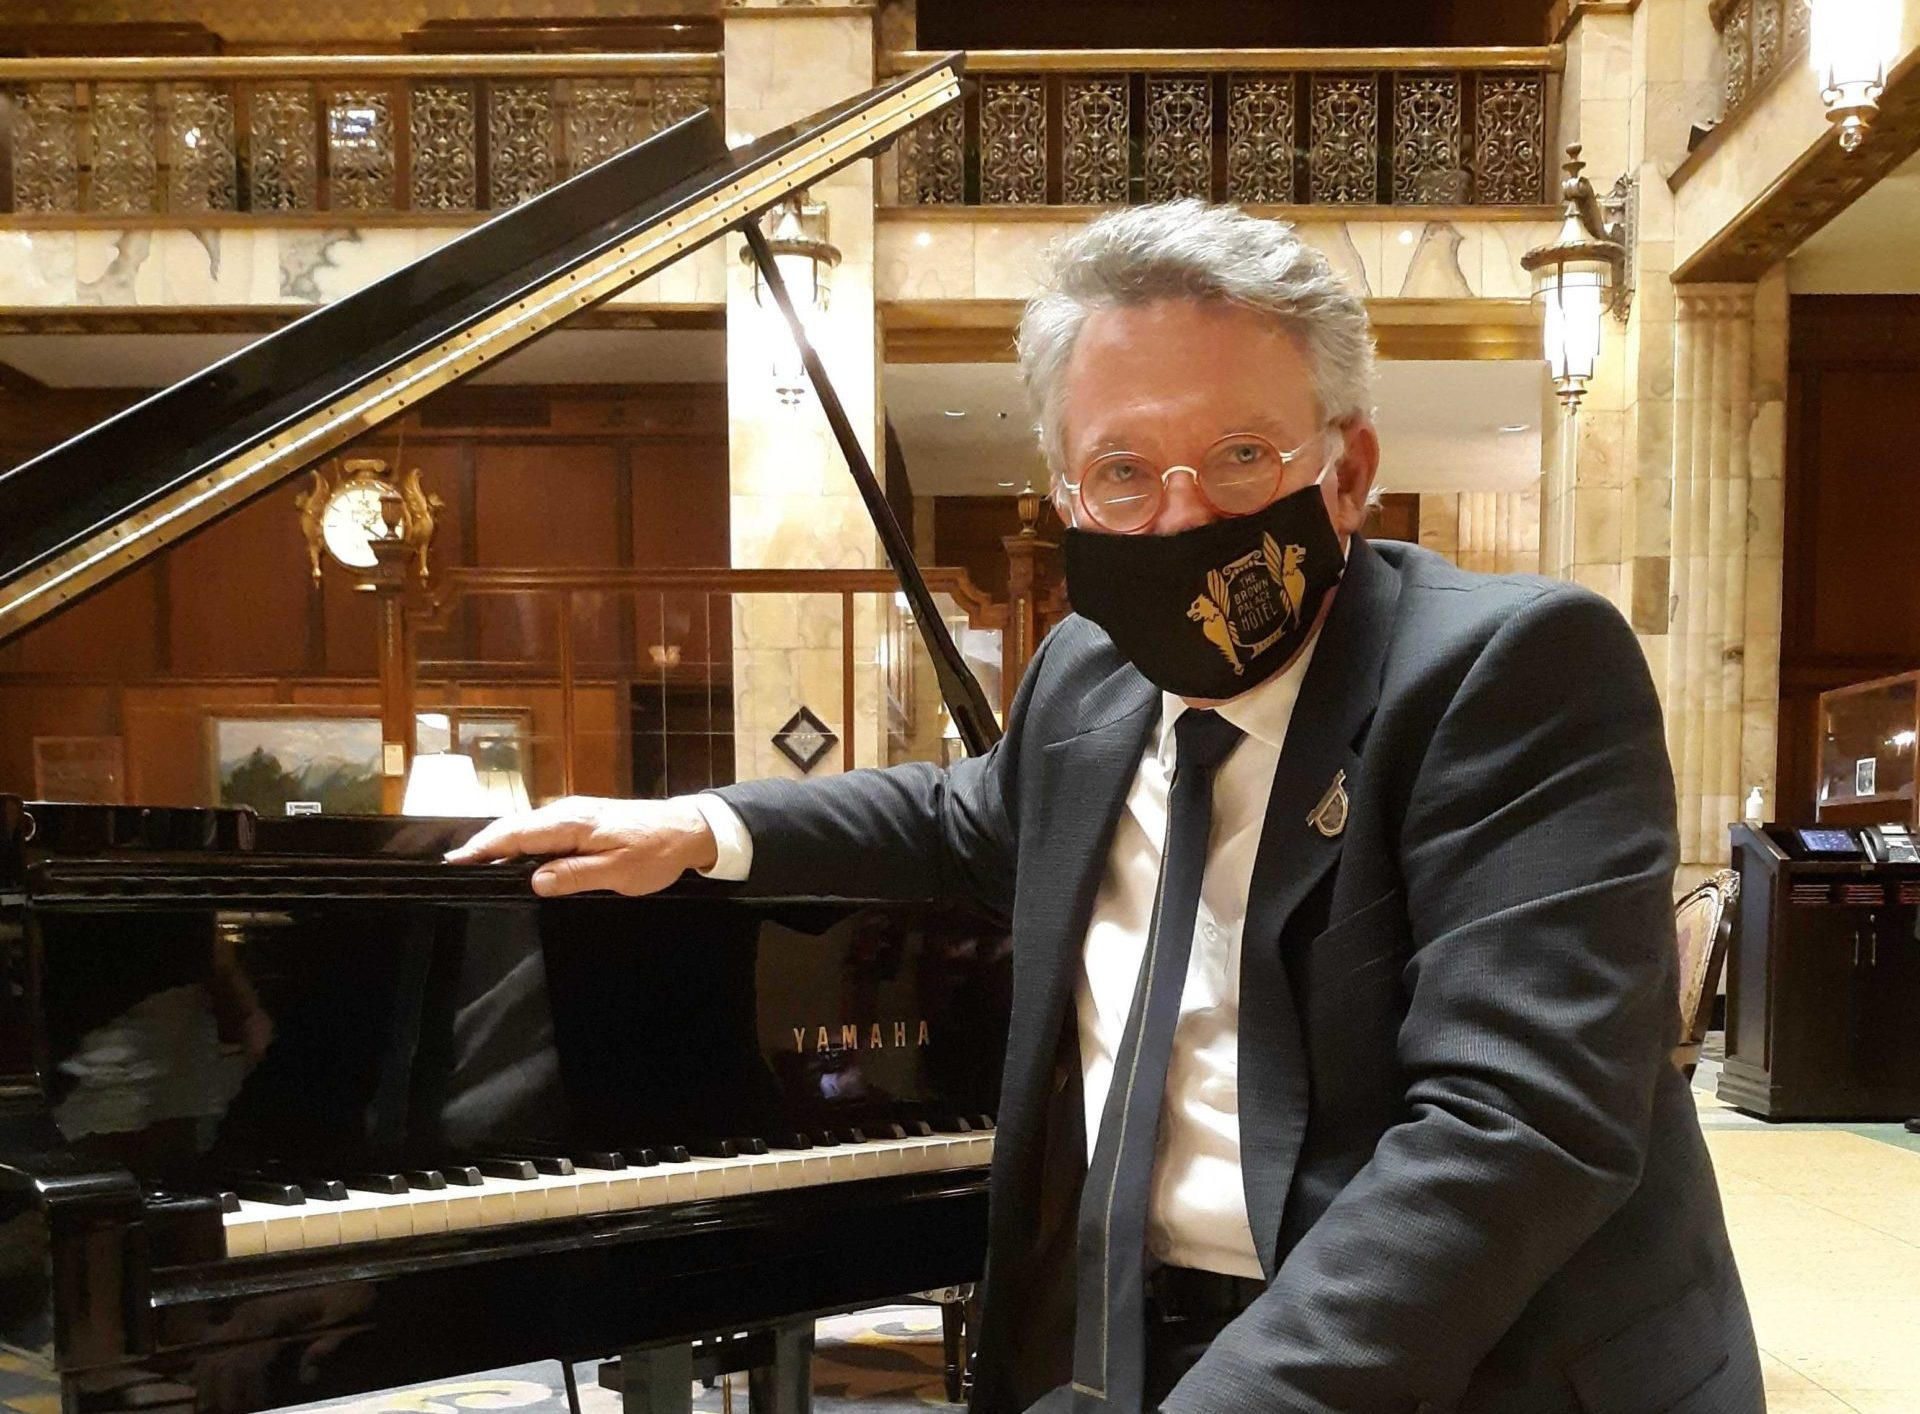 John Kite is playing the piano once again at the Brown Palace Hotel in Denver after initially losing his job due to the pandemic shutdowns.